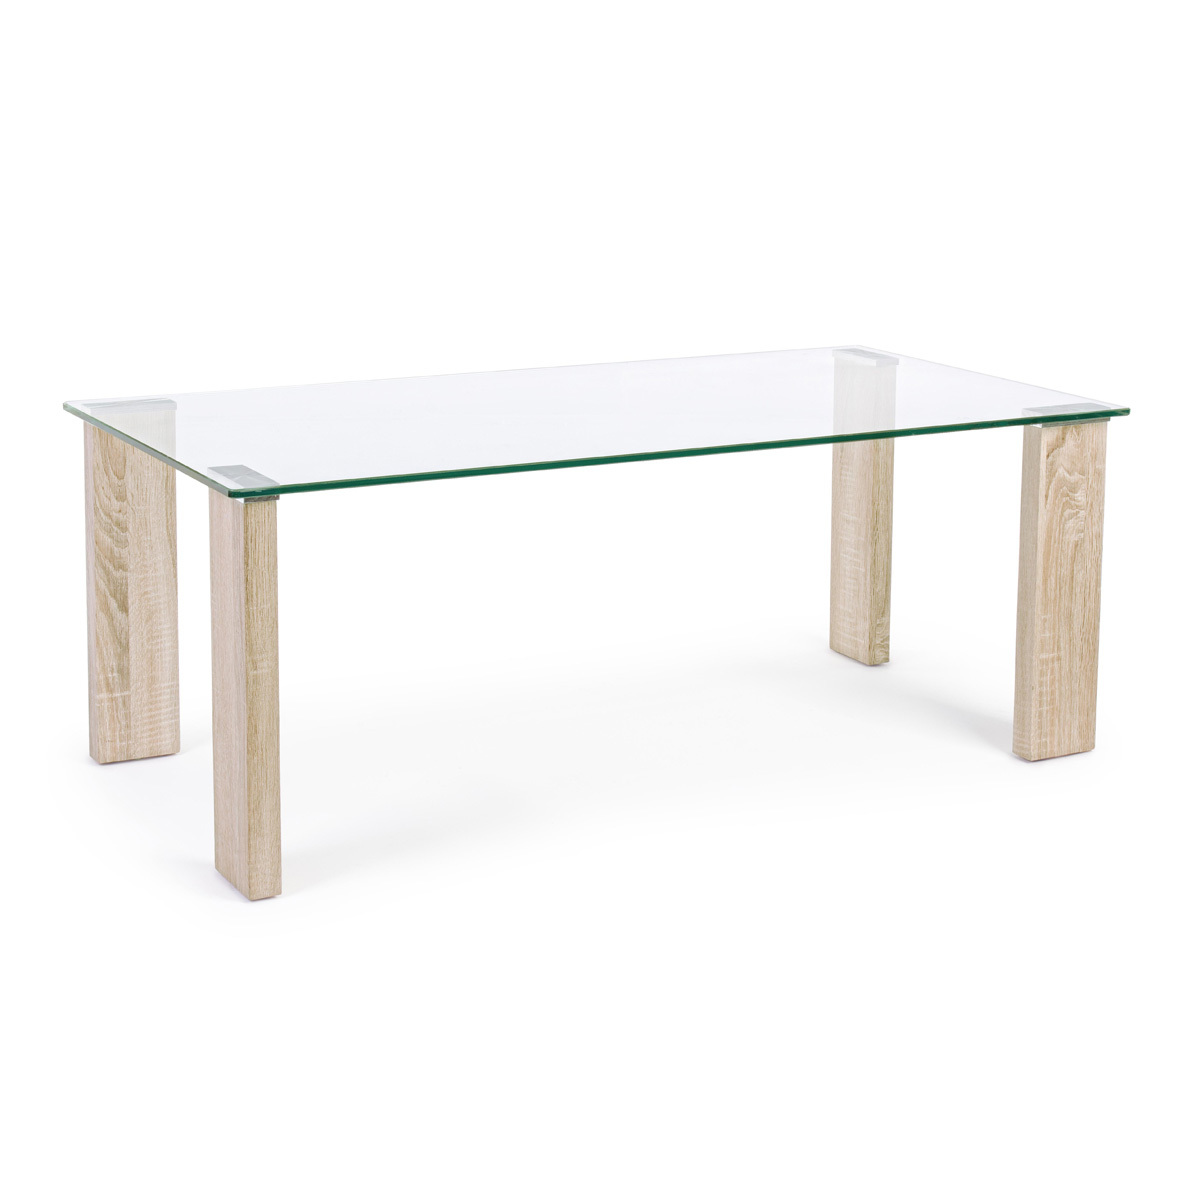 Photos 1: Bizzotto Table in glass and wood l. 120 x 60 0731677